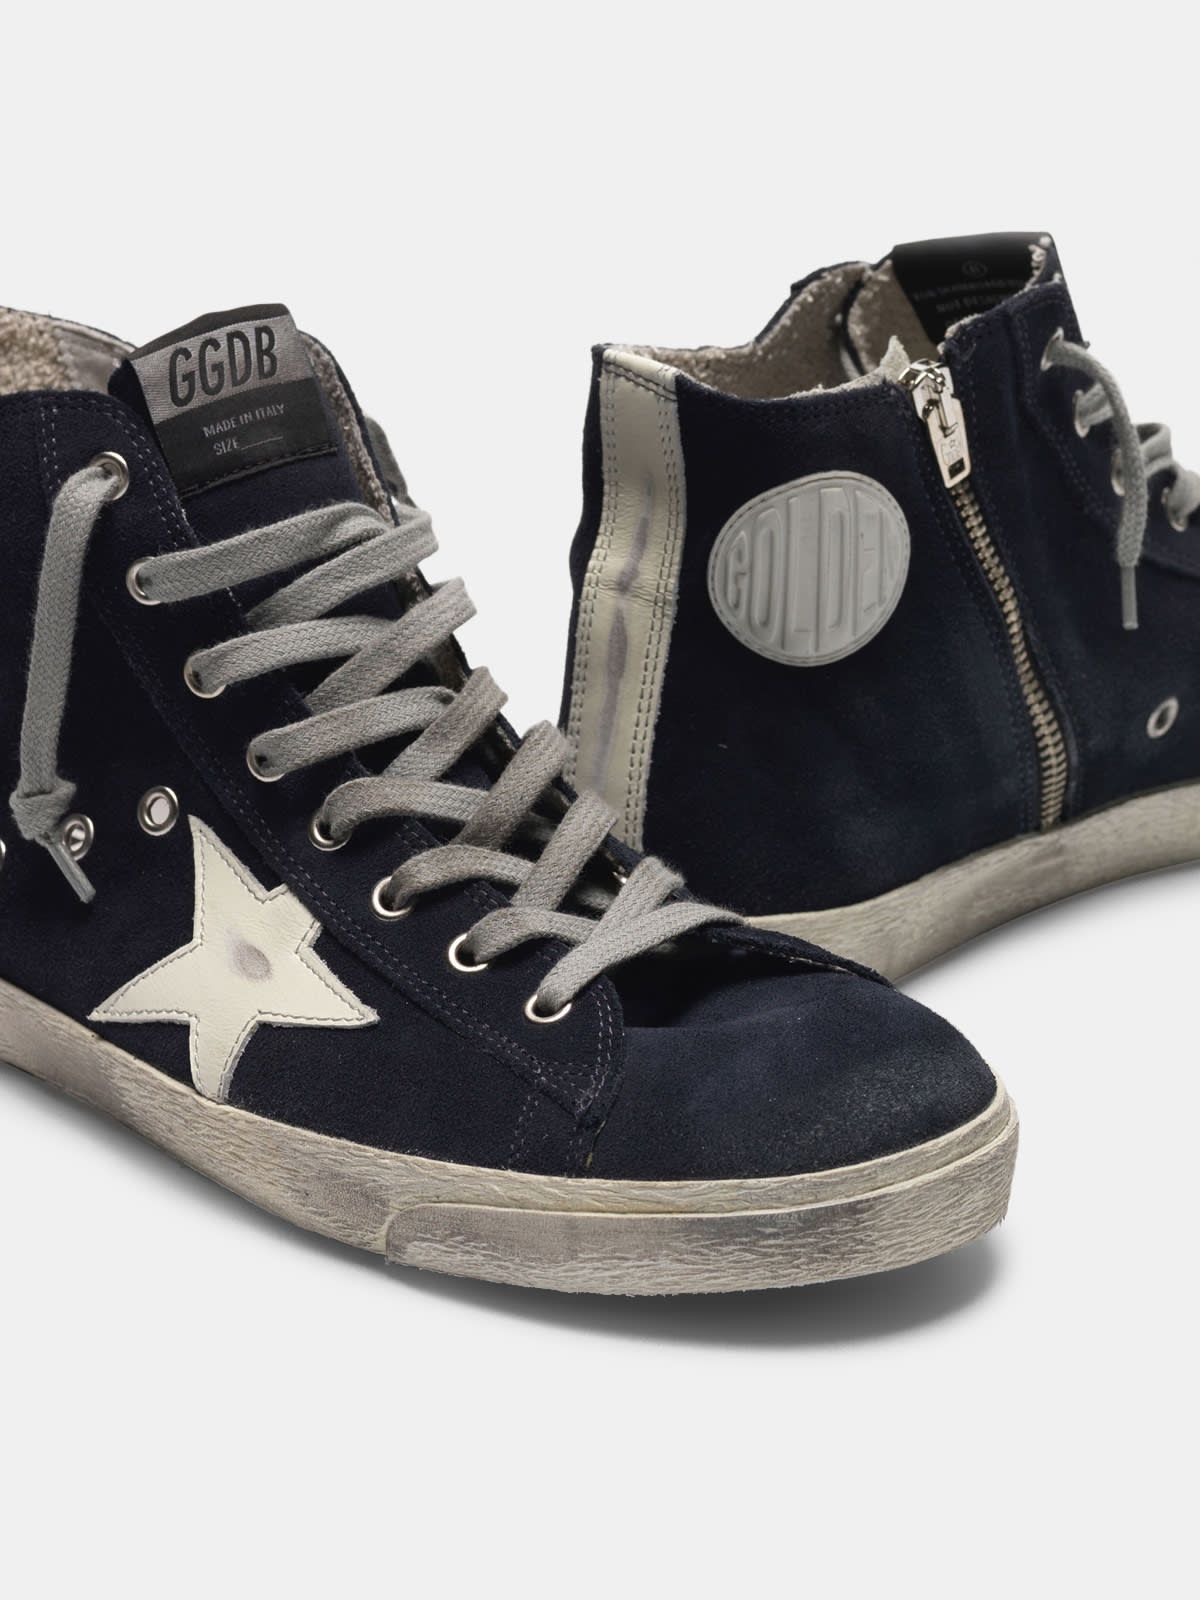 Francy sneakers in leather with leather star and heel tab